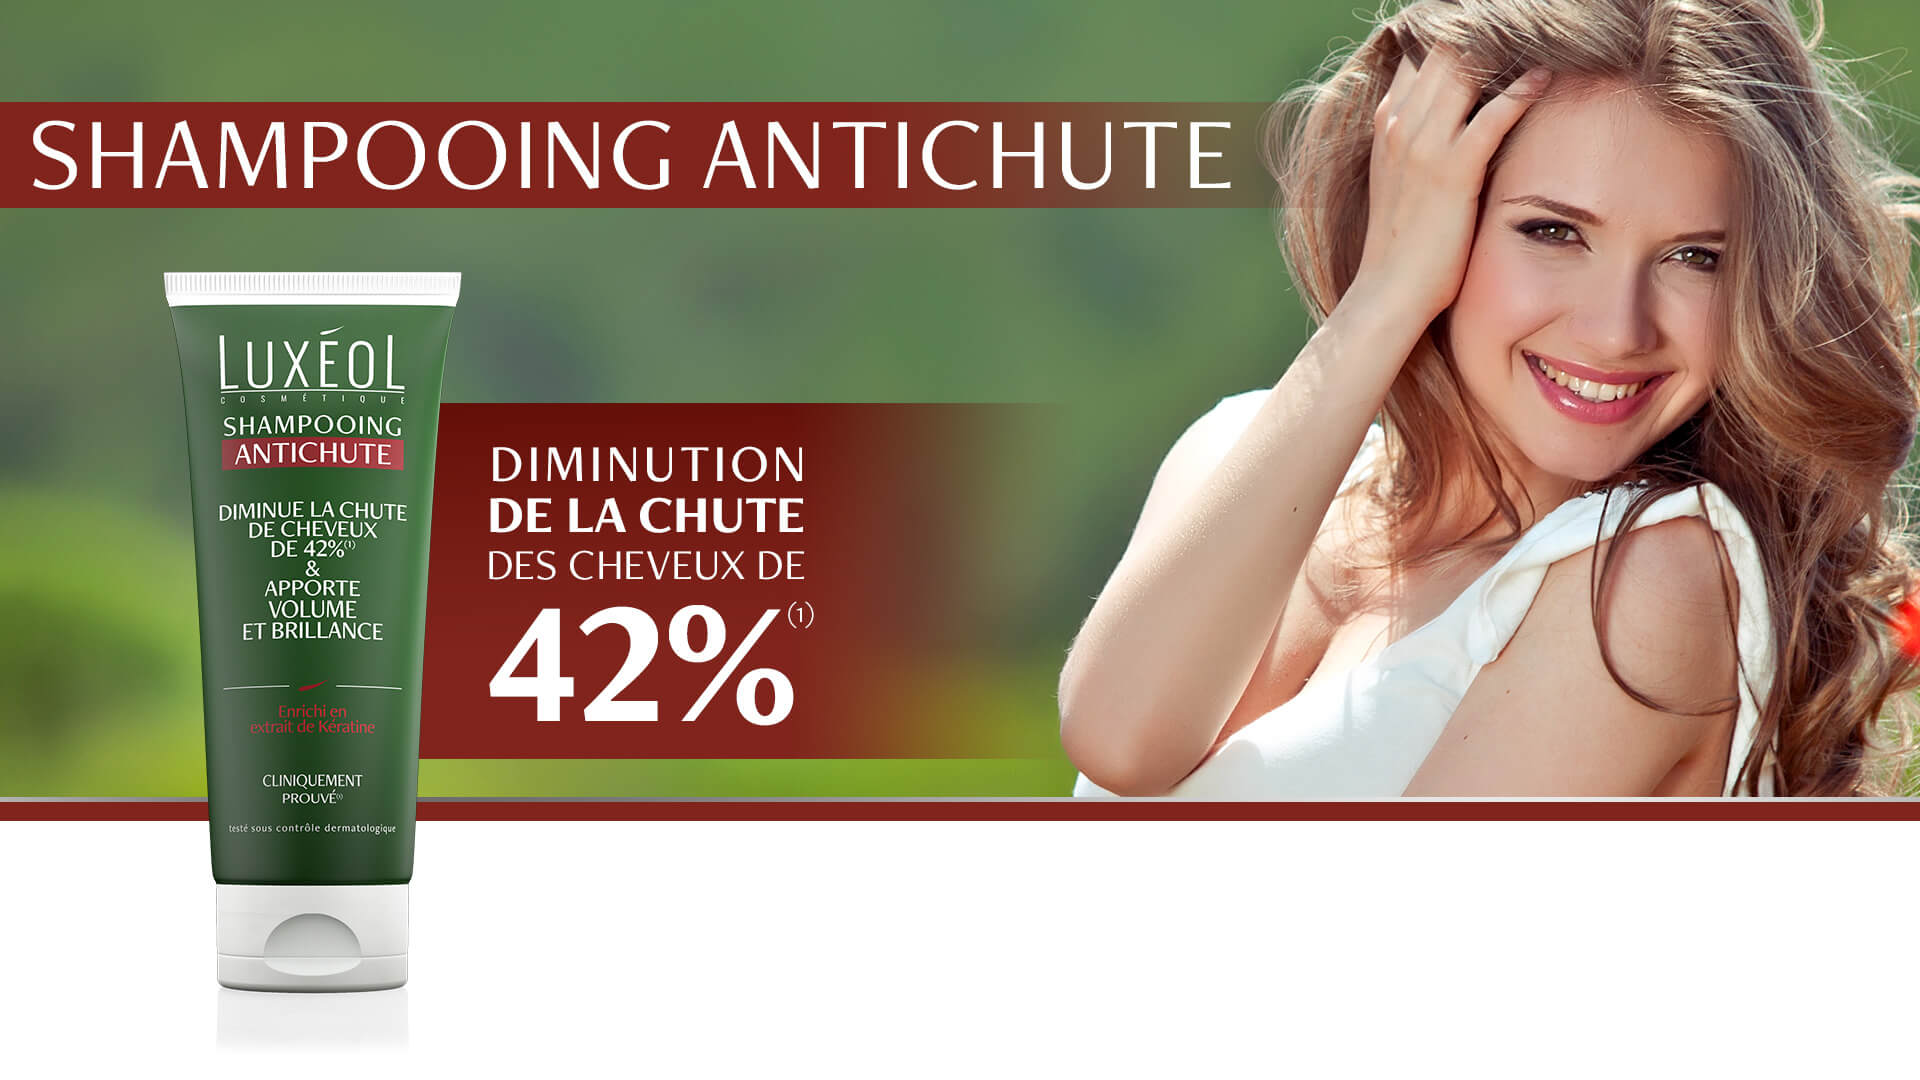 Luxéol Shampooing Antichute